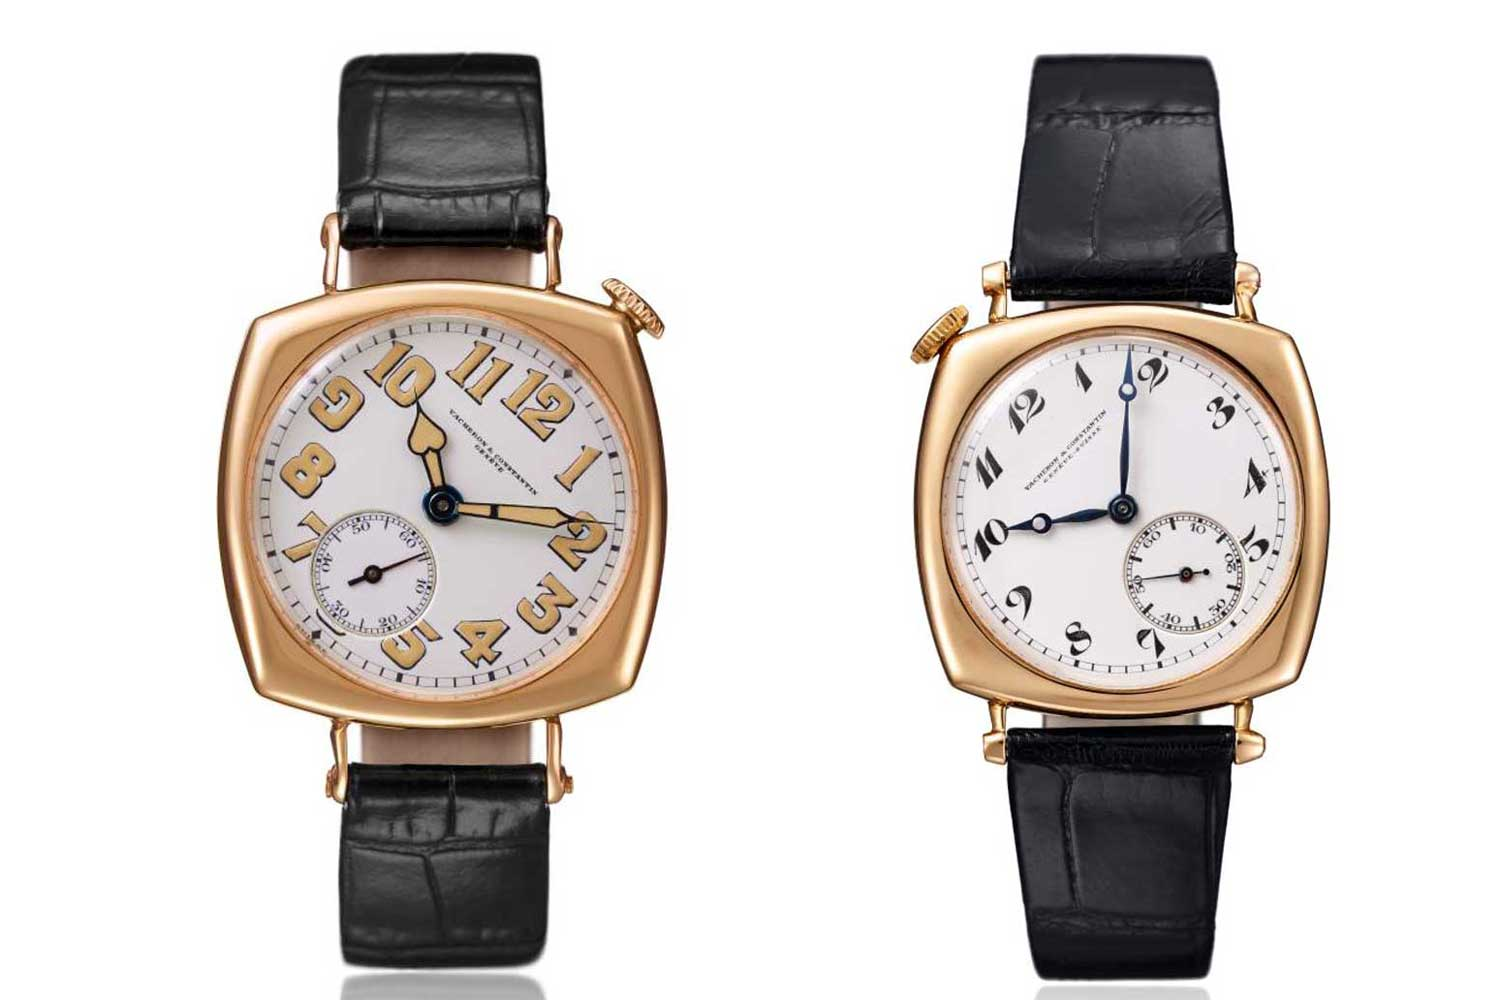 Vacheron Constantin Heritage reference 11032 from 1919 and reference 11677 from 1921